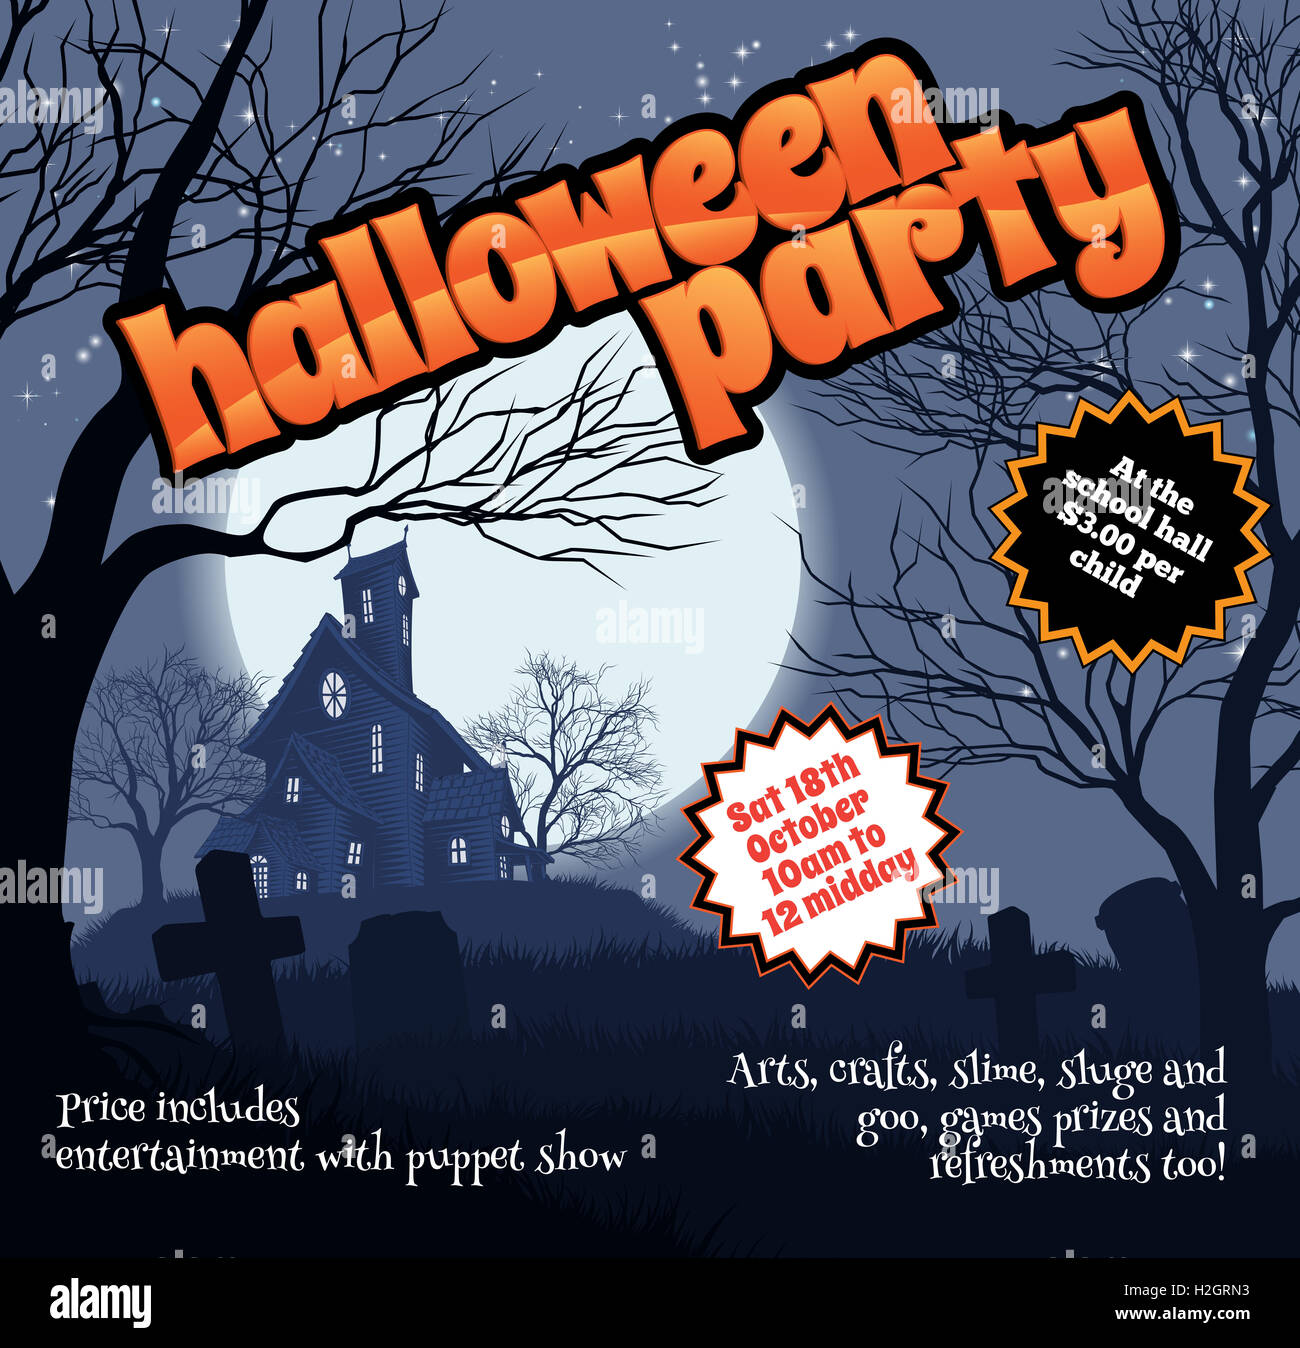 A Halloween party flyer leaflet with a spooky haunted house and ...